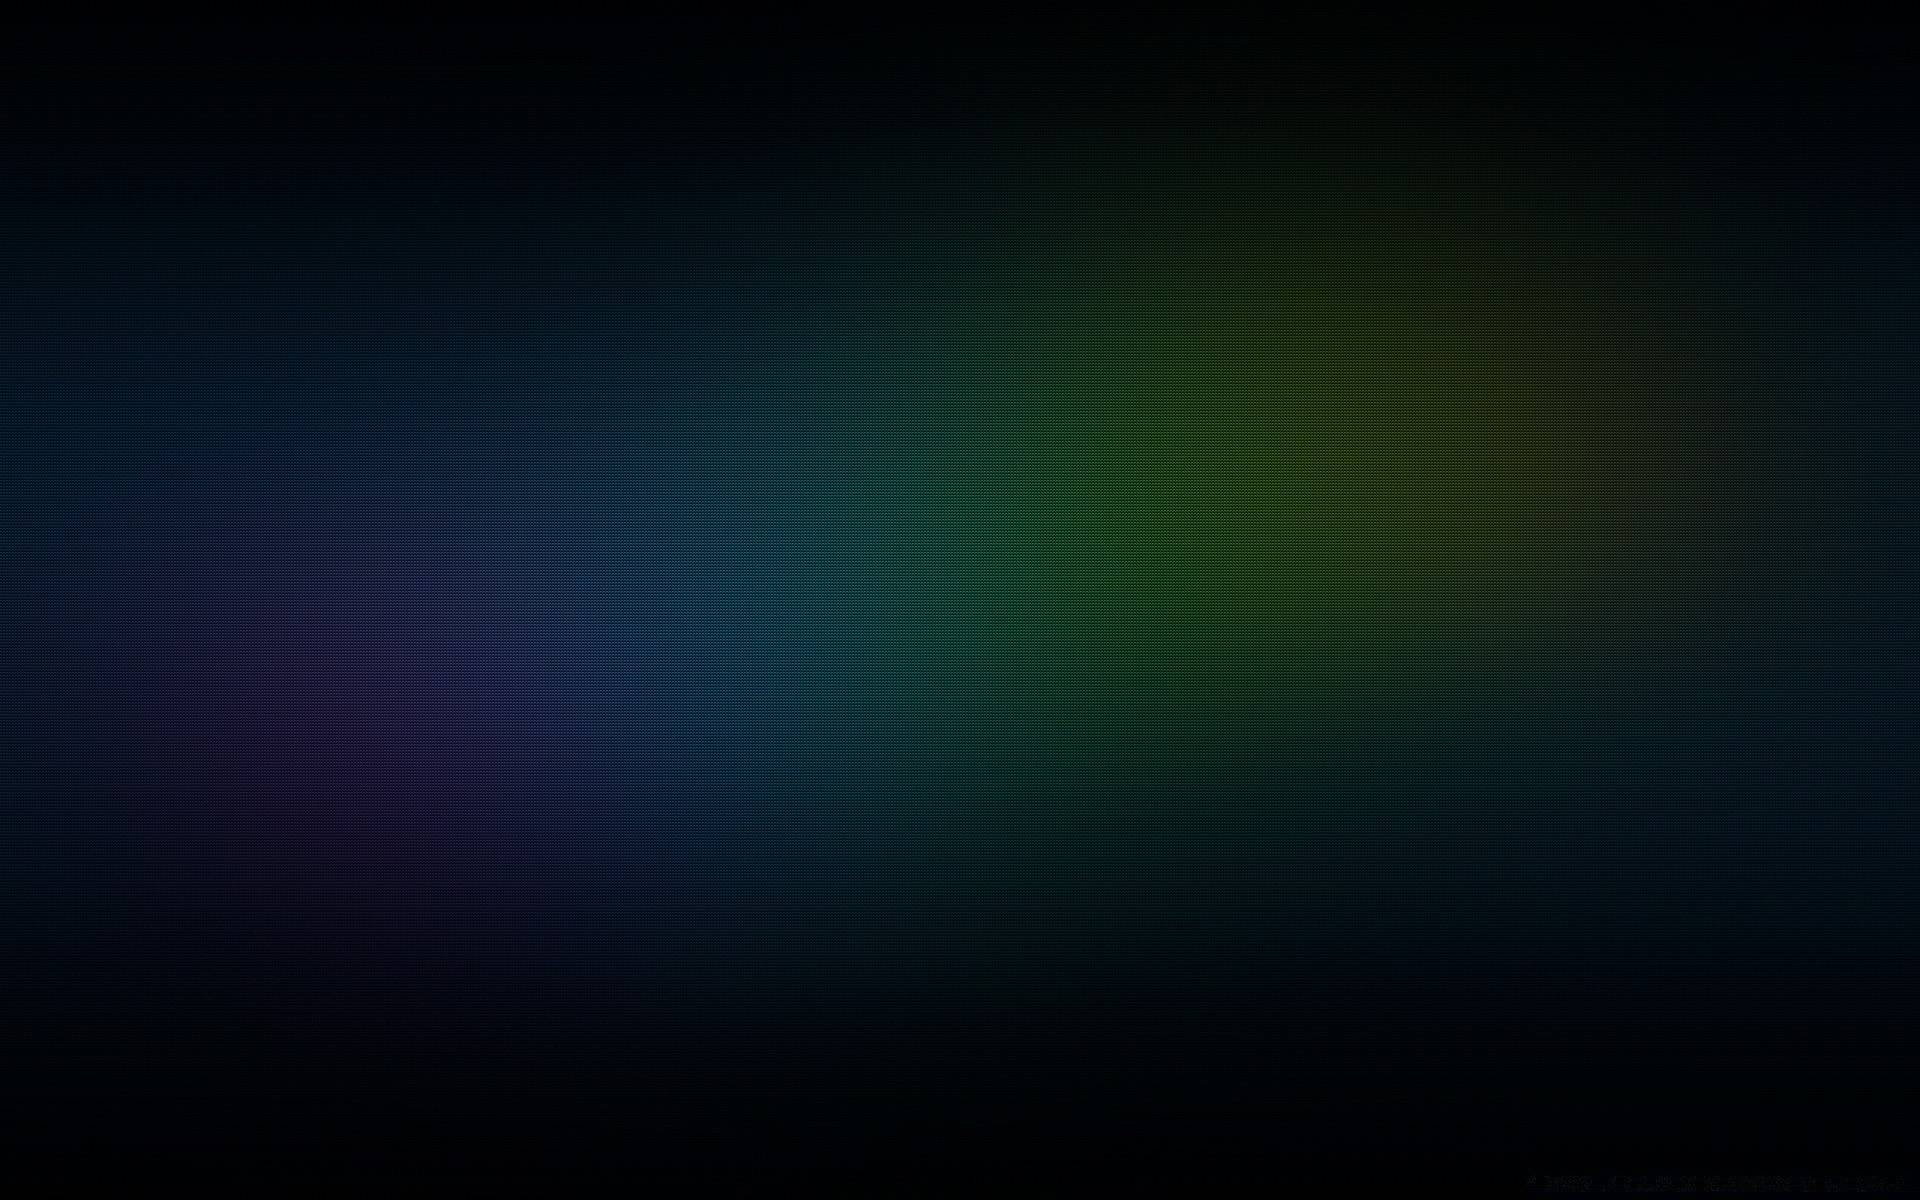 Dark Colors Background Iphone Wallpapers For Free